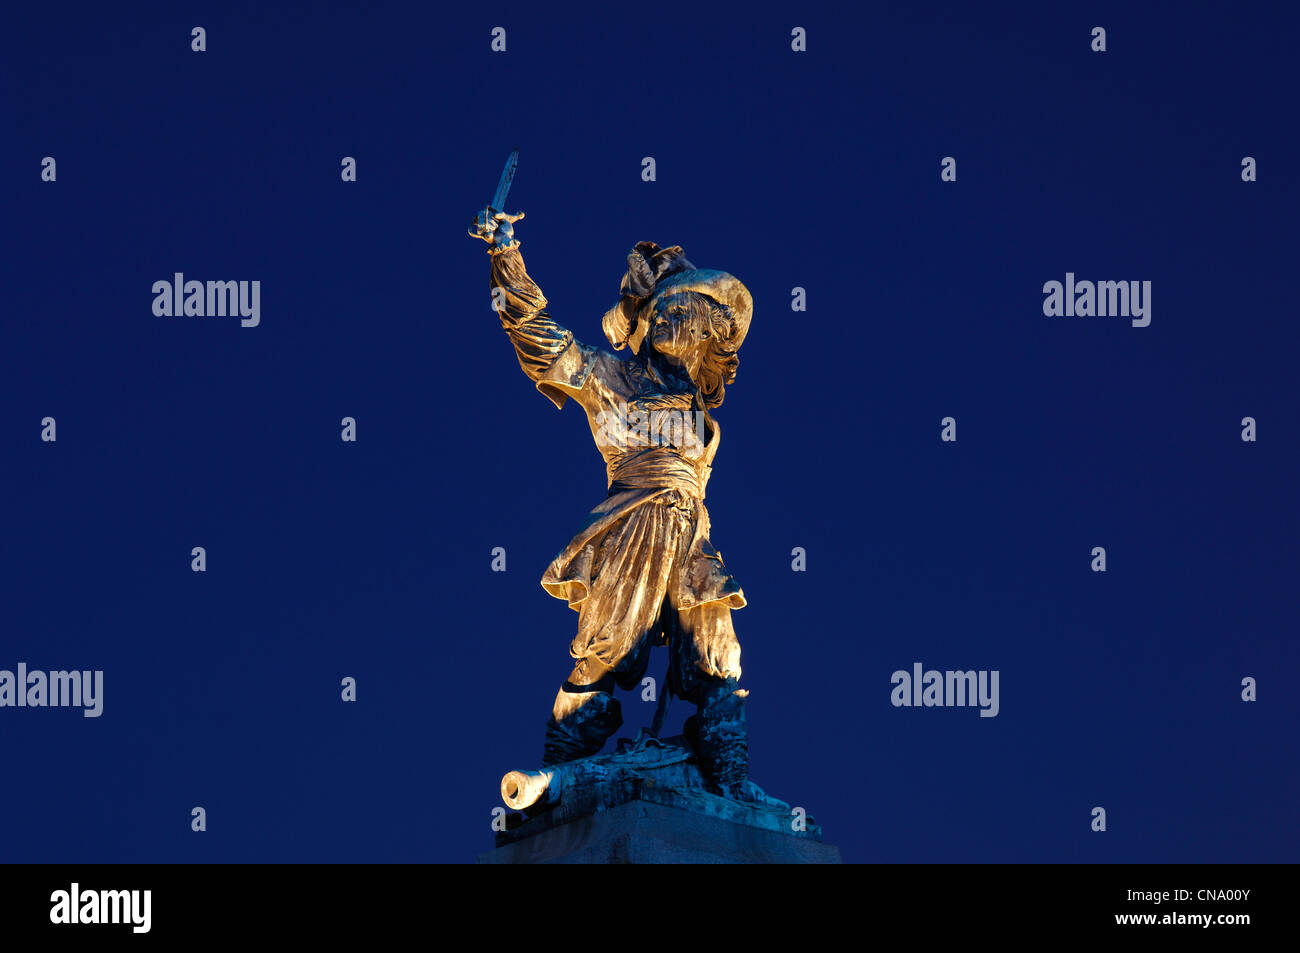 France, Nord, Dunkirk, Jean Bart statue at night at the Jean Bart place, the famous French corsair born in Dunkirk - Stock Image